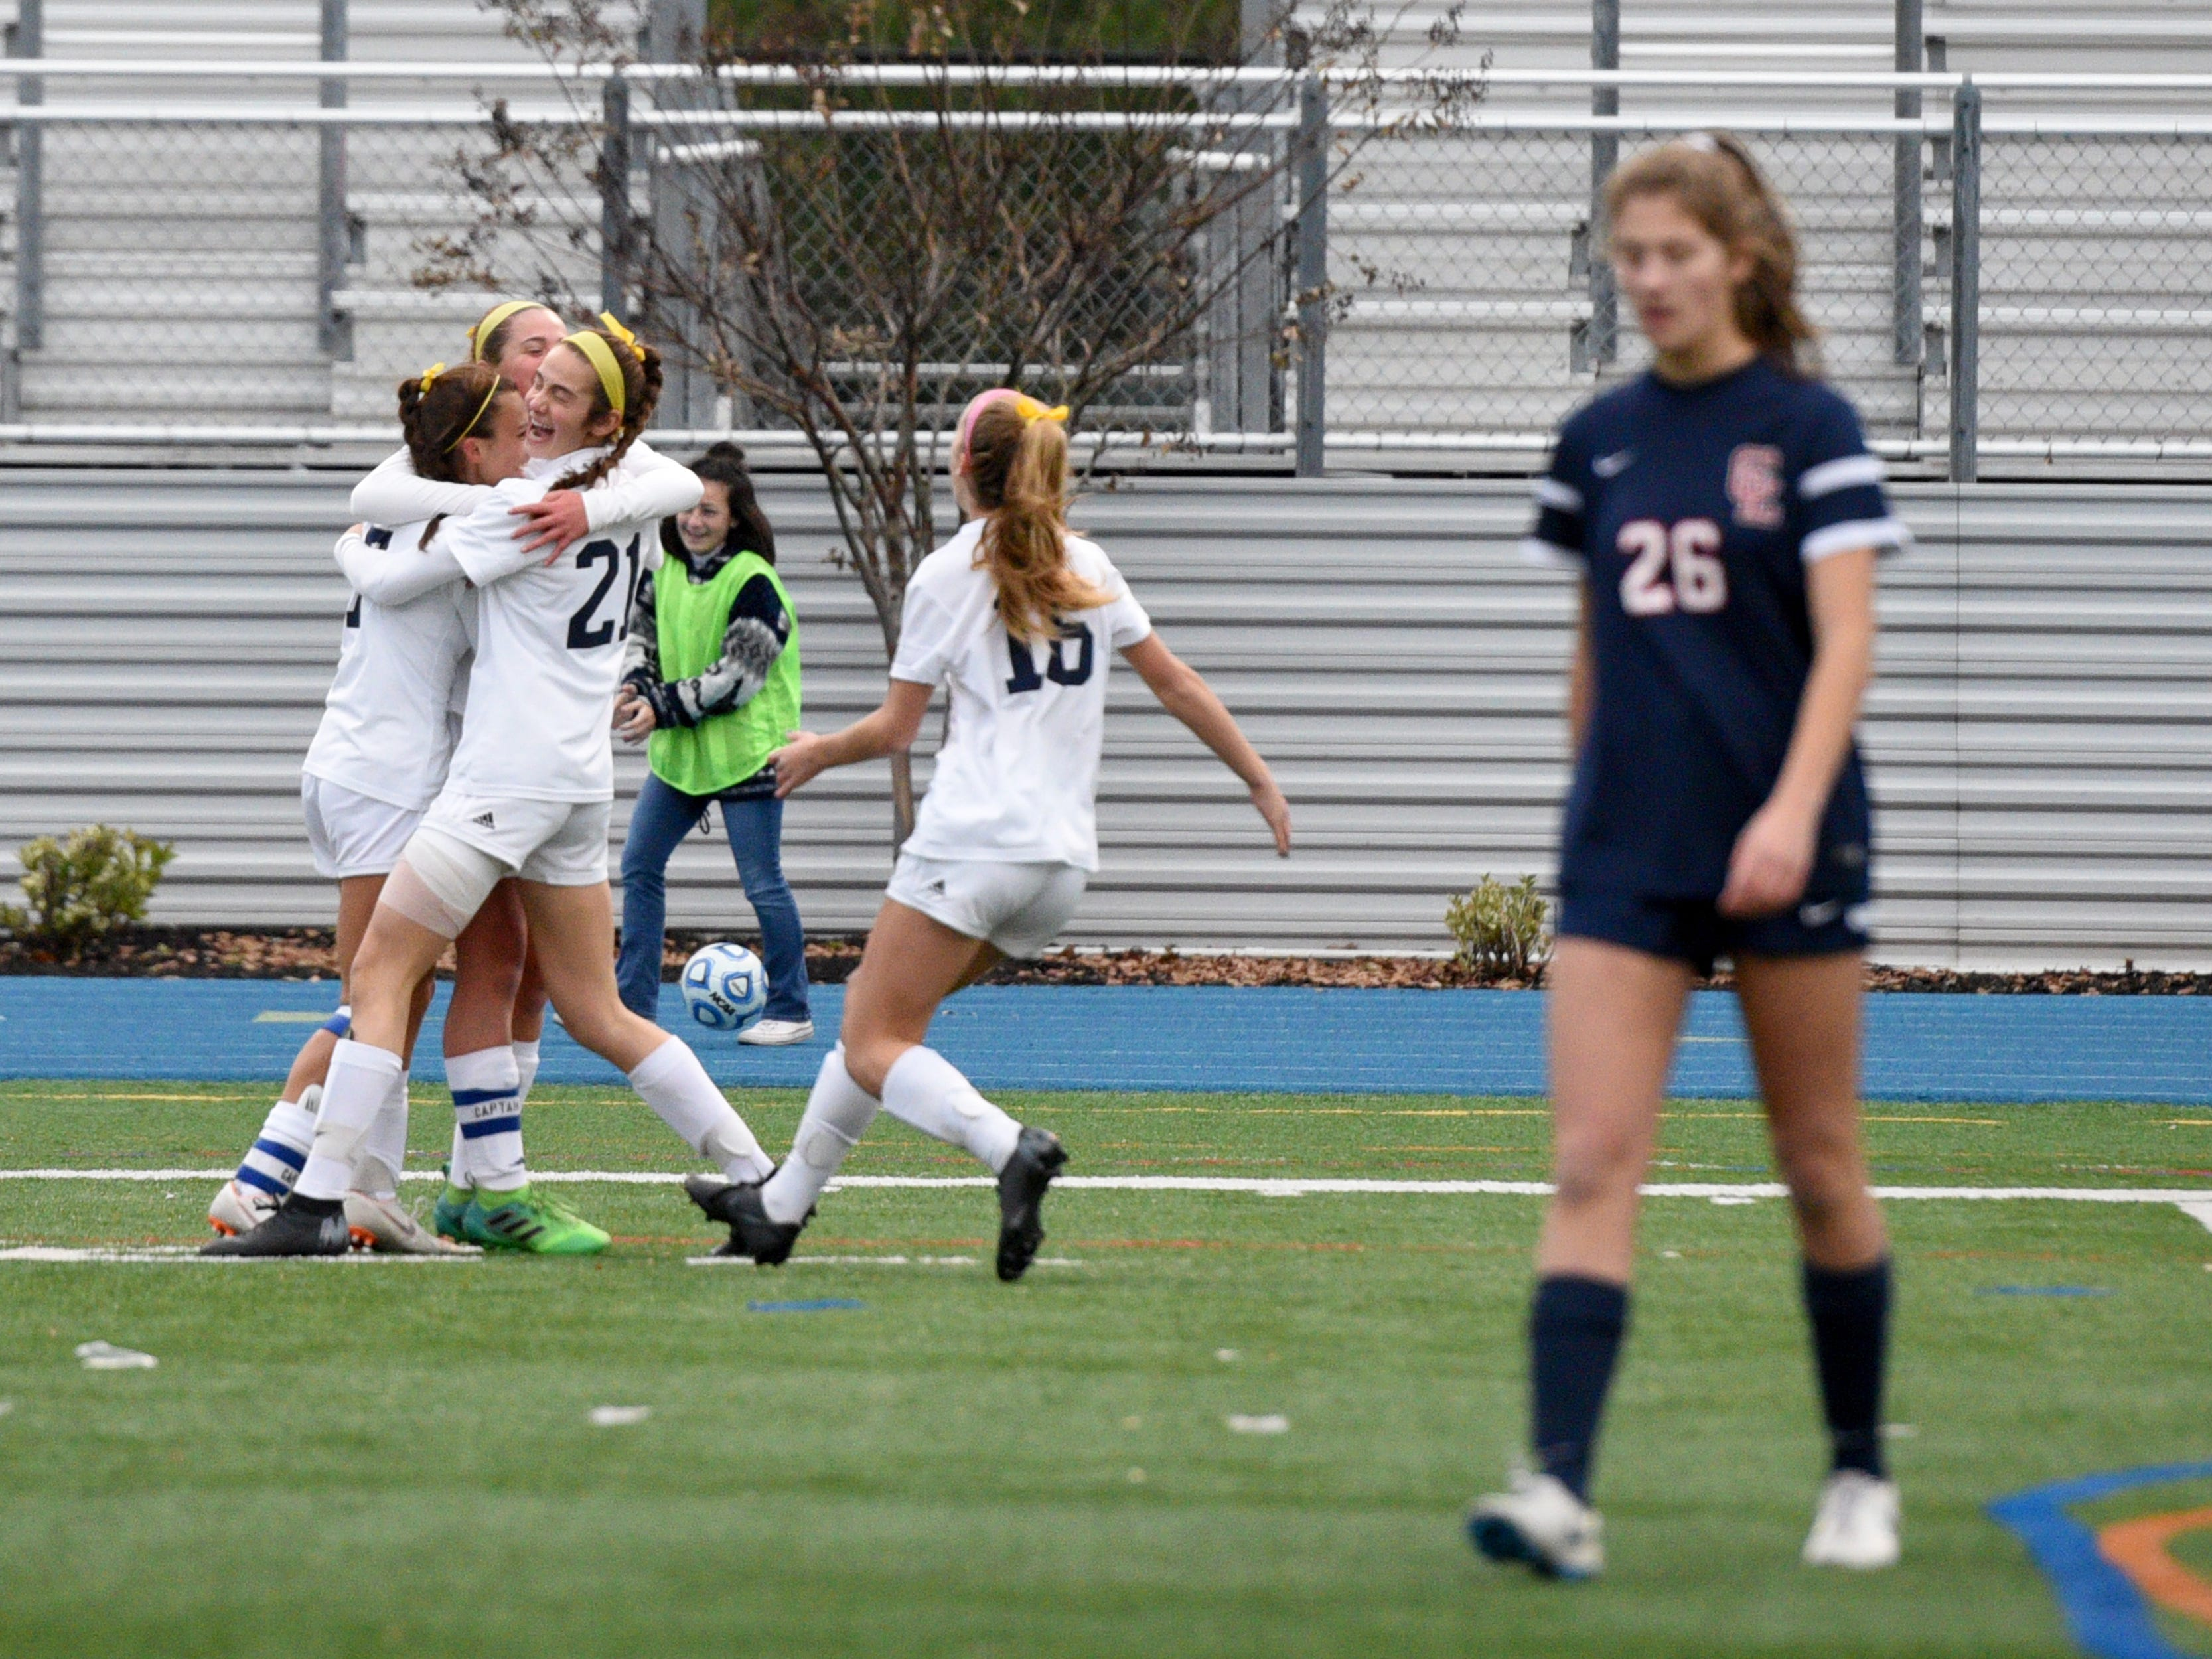 Ramsey celebrates a goal during the first half against Governor Livingston in the Group II final on Sunday, Nov. 18, 2018 at Kean University.